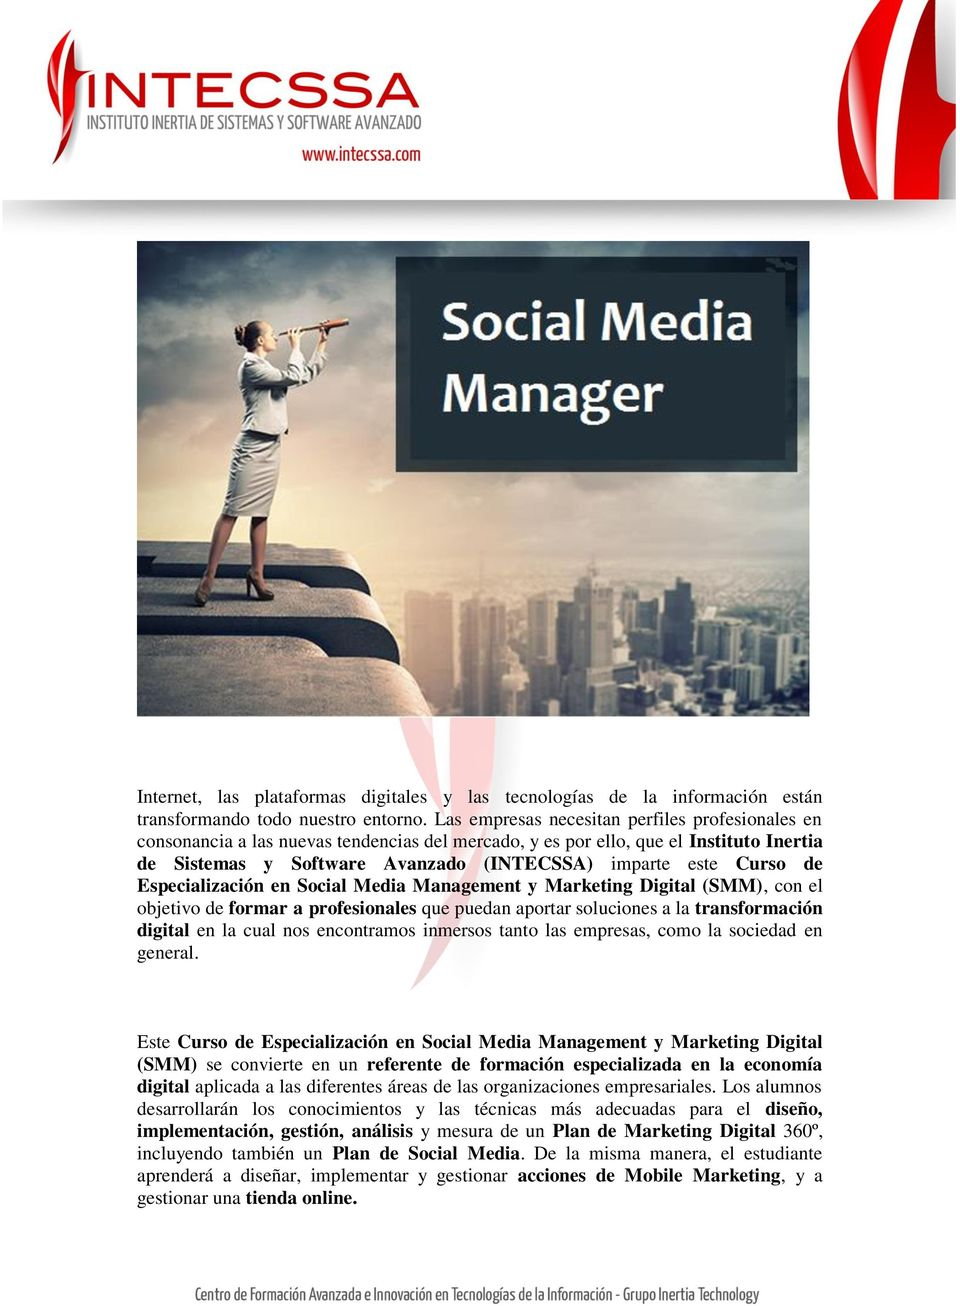 de Especialización en Social Media Management y Marketing Digital (SMM), con el objetivo de formar a profesionales que puedan aportar soluciones a la transformación digital en la cual nos encontramos